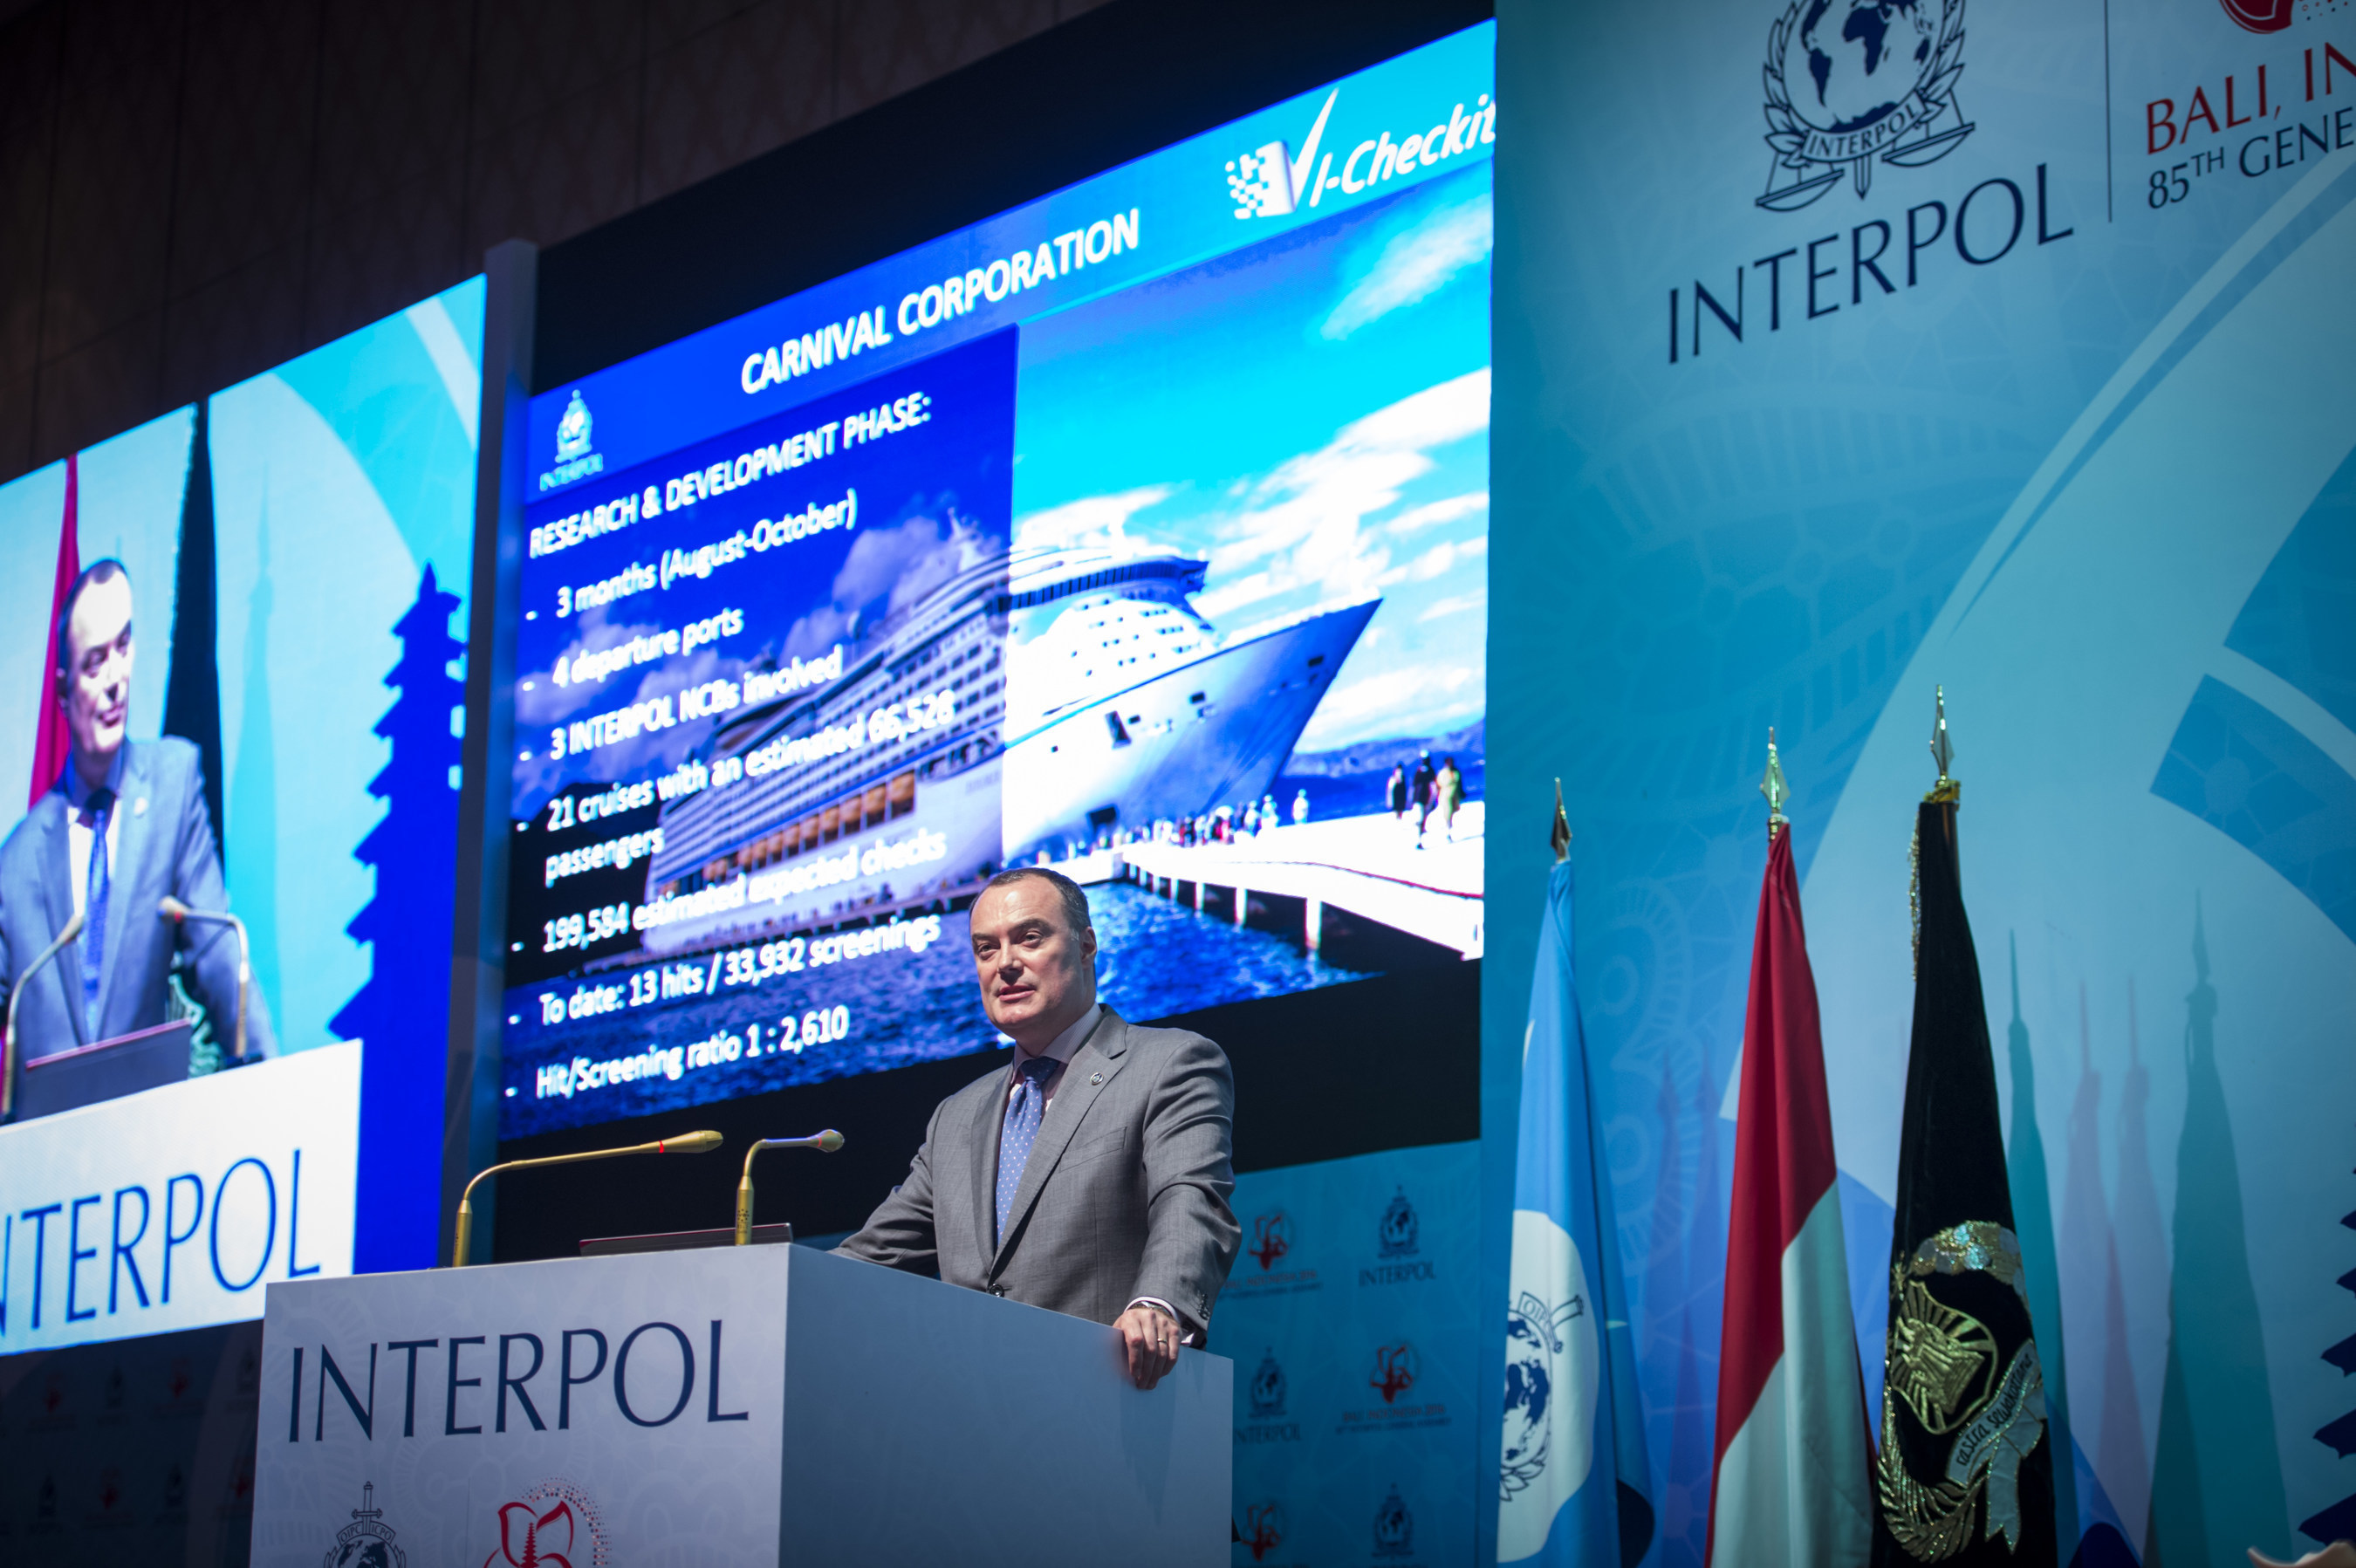 Mick O'Connell, director of operational support and analysis for INTERPOL, presents at INTERPOL's General Assembly where Carnival Corporation was announced as the first maritime company to partner with the organization for advanced security screening across its global operations. Carnival Corporation received approval at the Assembly to integrate its global passenger check-in process with INTERPOL's I-Checkit system.